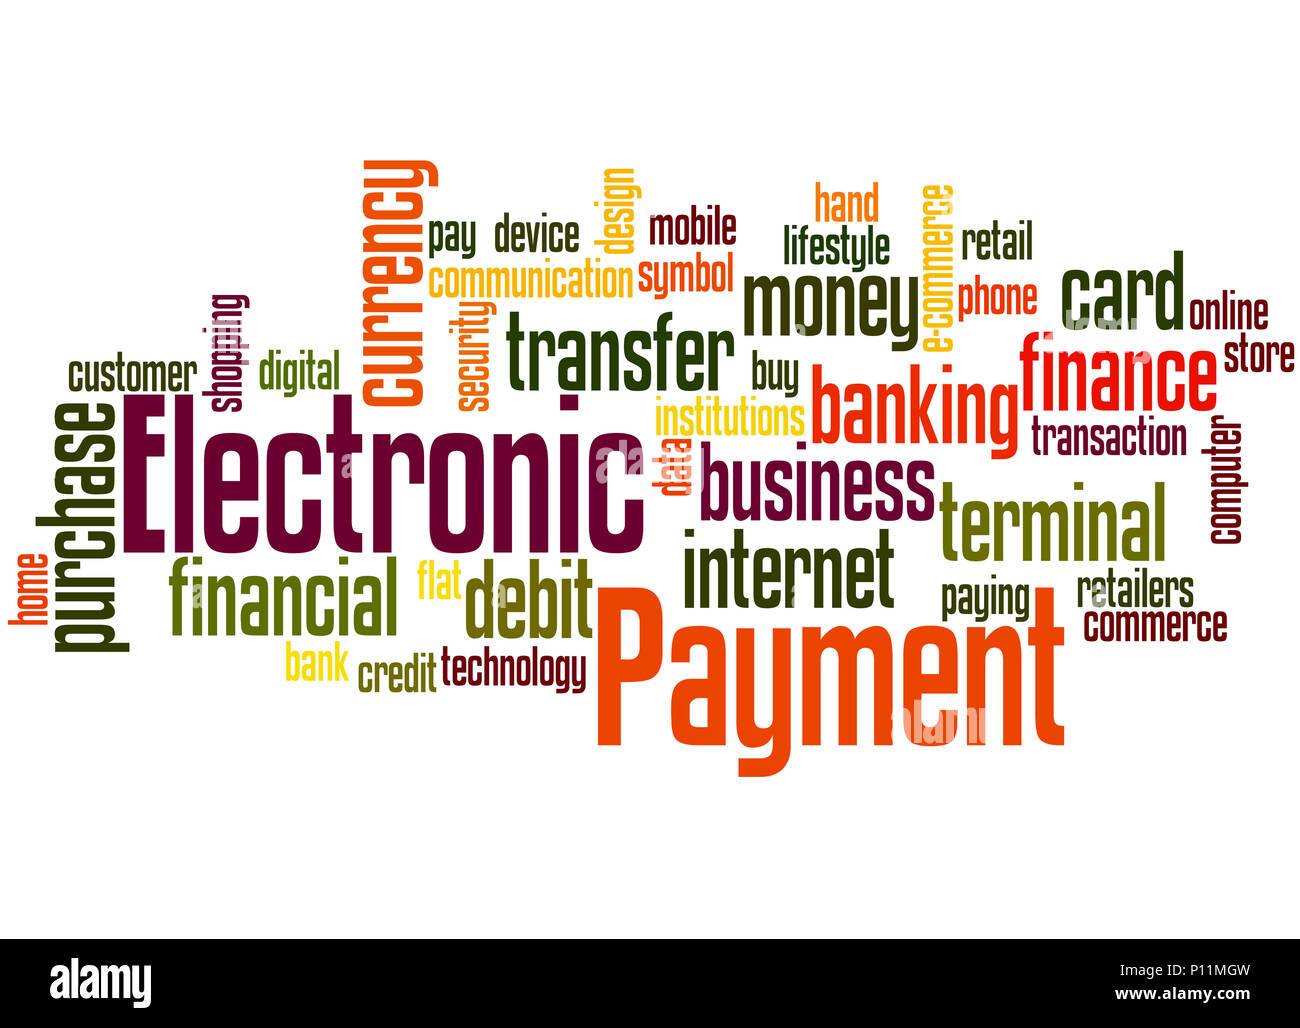 Electronic payment, word cloud concept on white background. - Stock Image